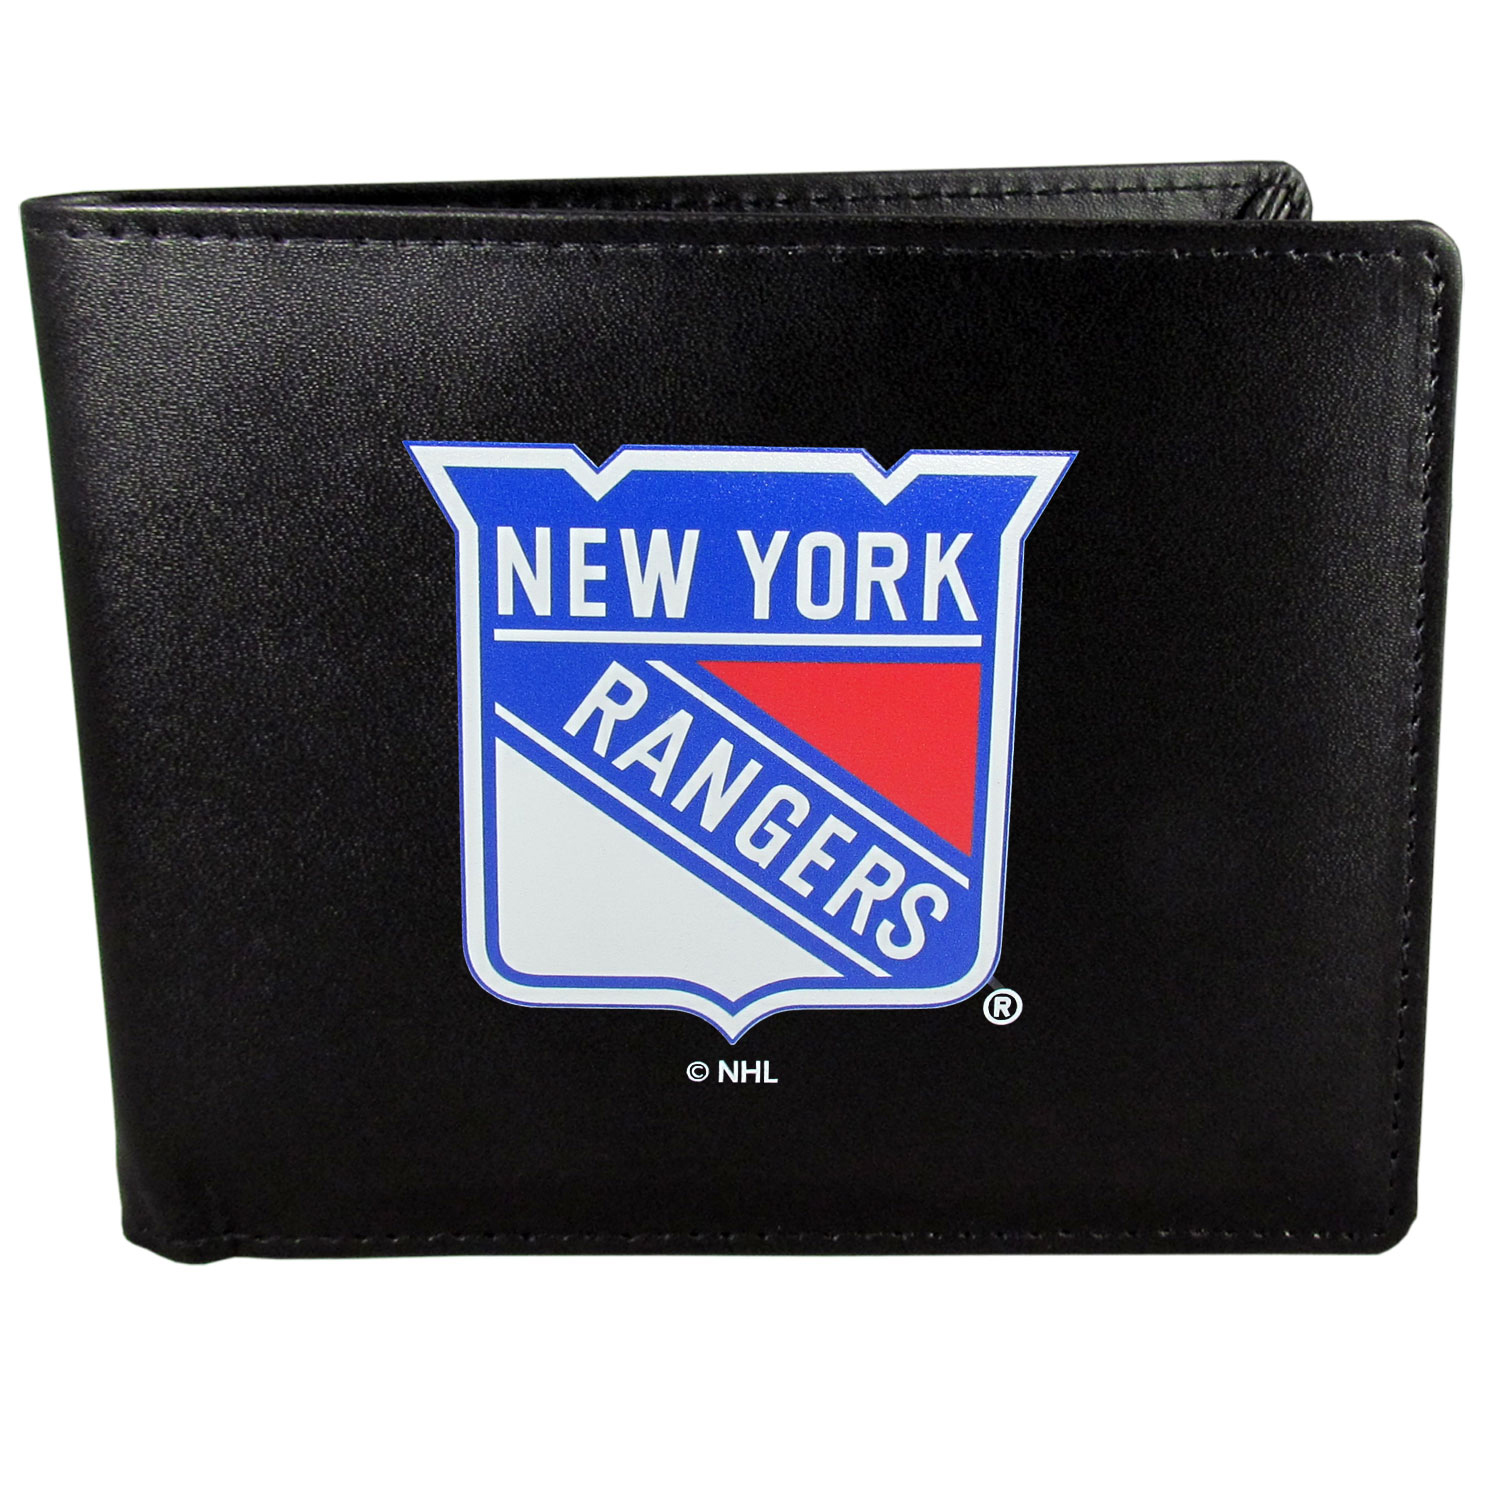 New York Rangers® Leather Bi-fold Wallet, Large Logo - Our classic fine leather bi-fold wallet is meticulously crafted with genuine leather that will age beautifully so you will have a quality wallet for years to come. The wallet opens to a large, billfold pocket and numerous credit card slots and has a convenient windowed ID slot. The front of the wallet features an extra large New York Rangers® printed logo.